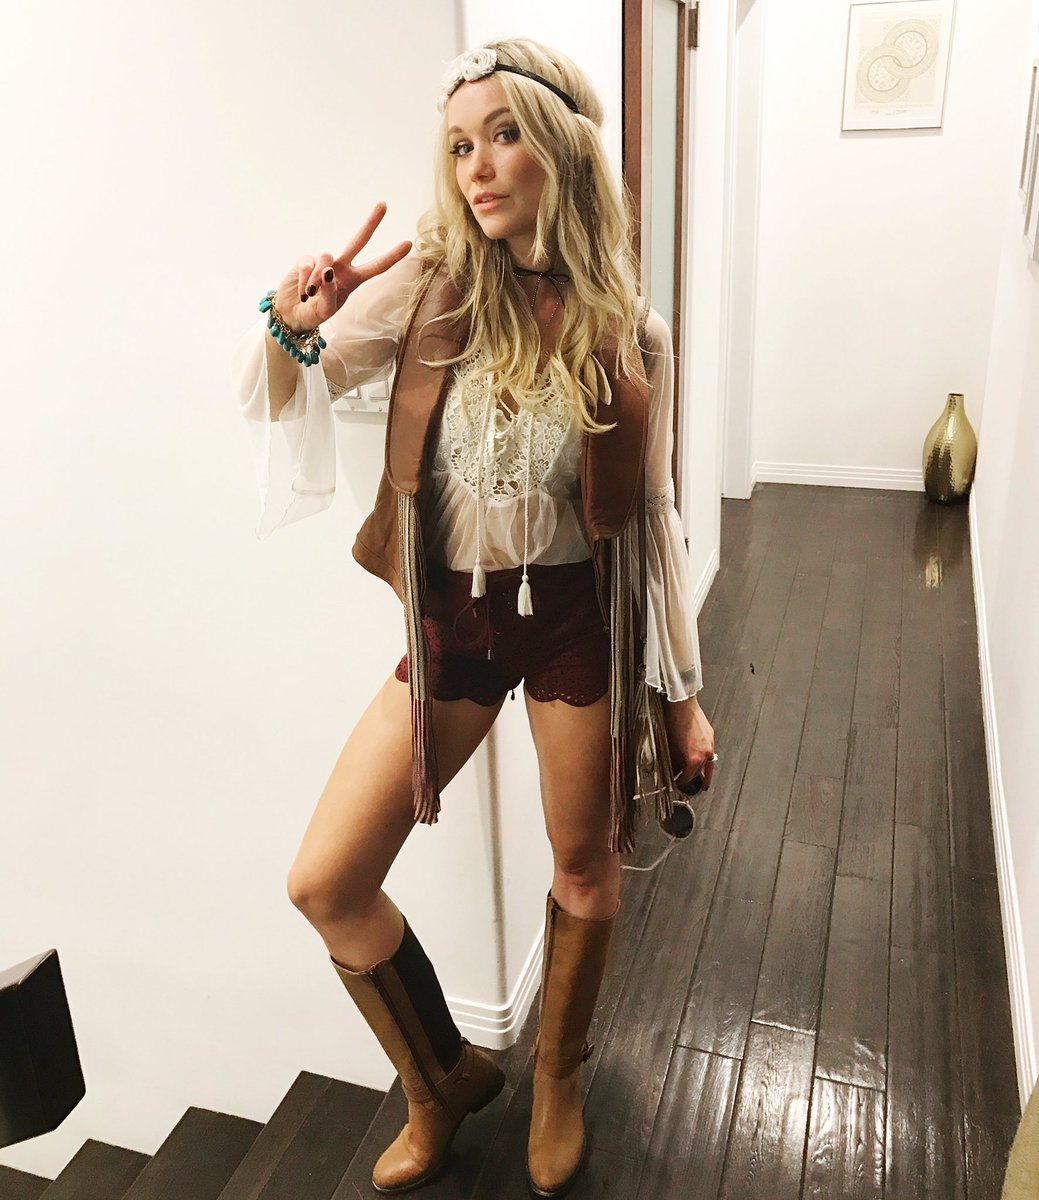 Twitter Katrina Bowden nudes (32 images), Leaked